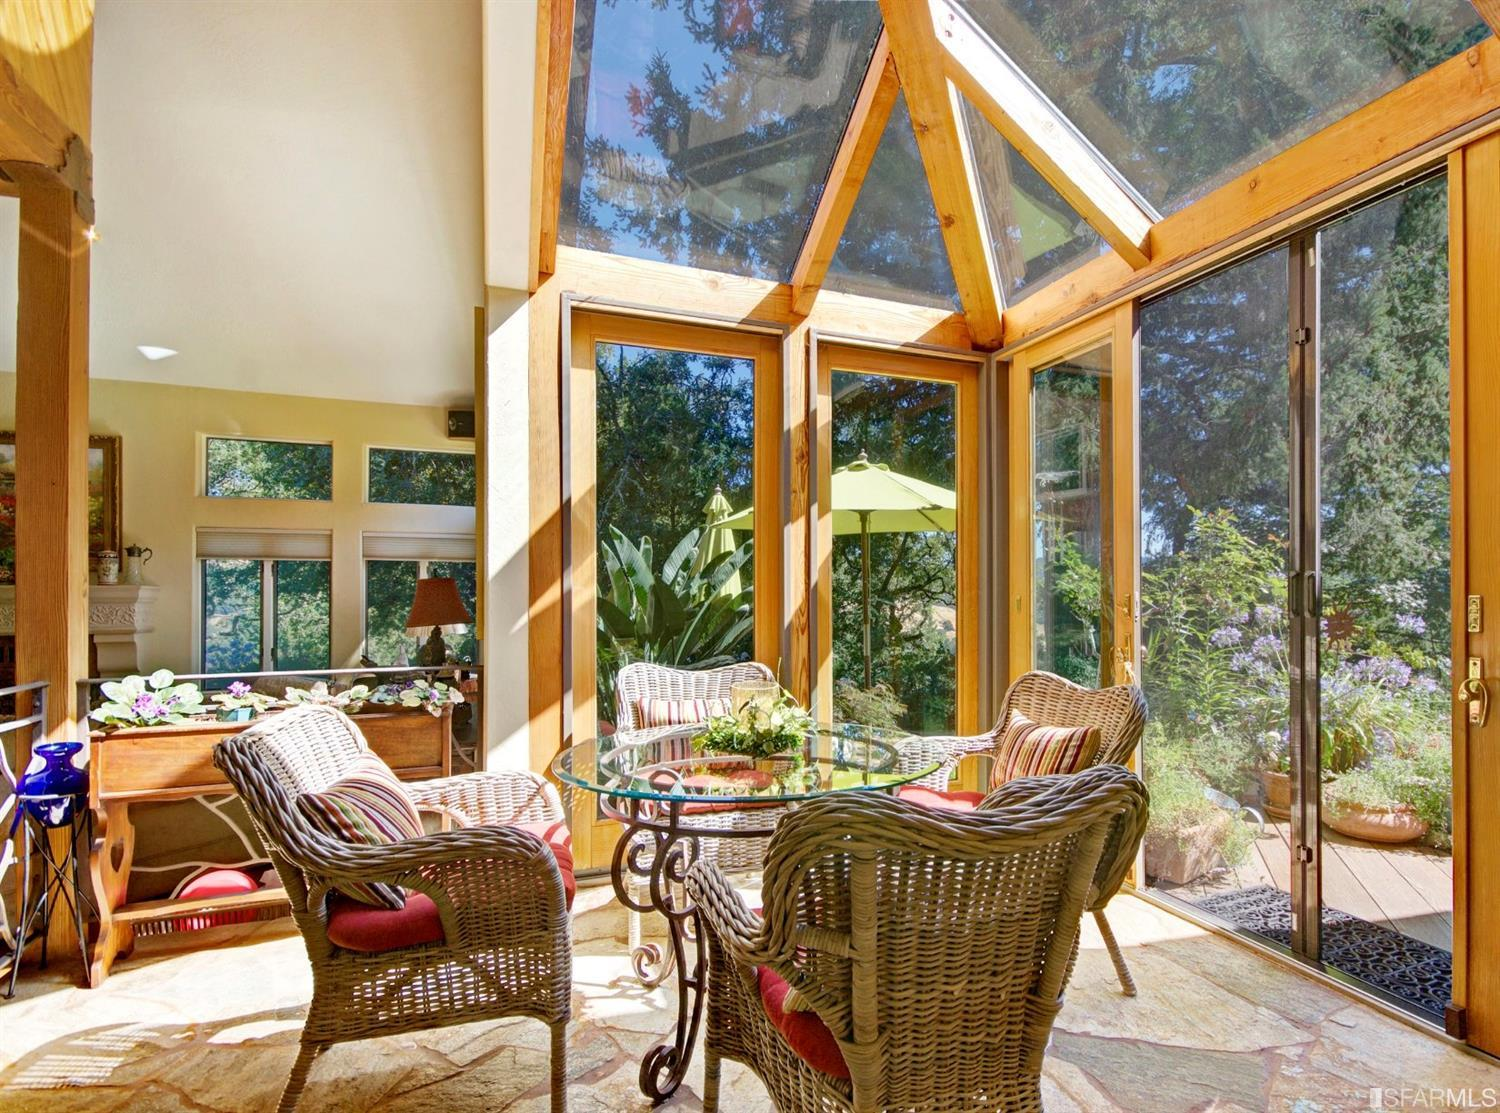 Whimsical Estate in Santa Rosa Sits On 30 SunFilled Acres